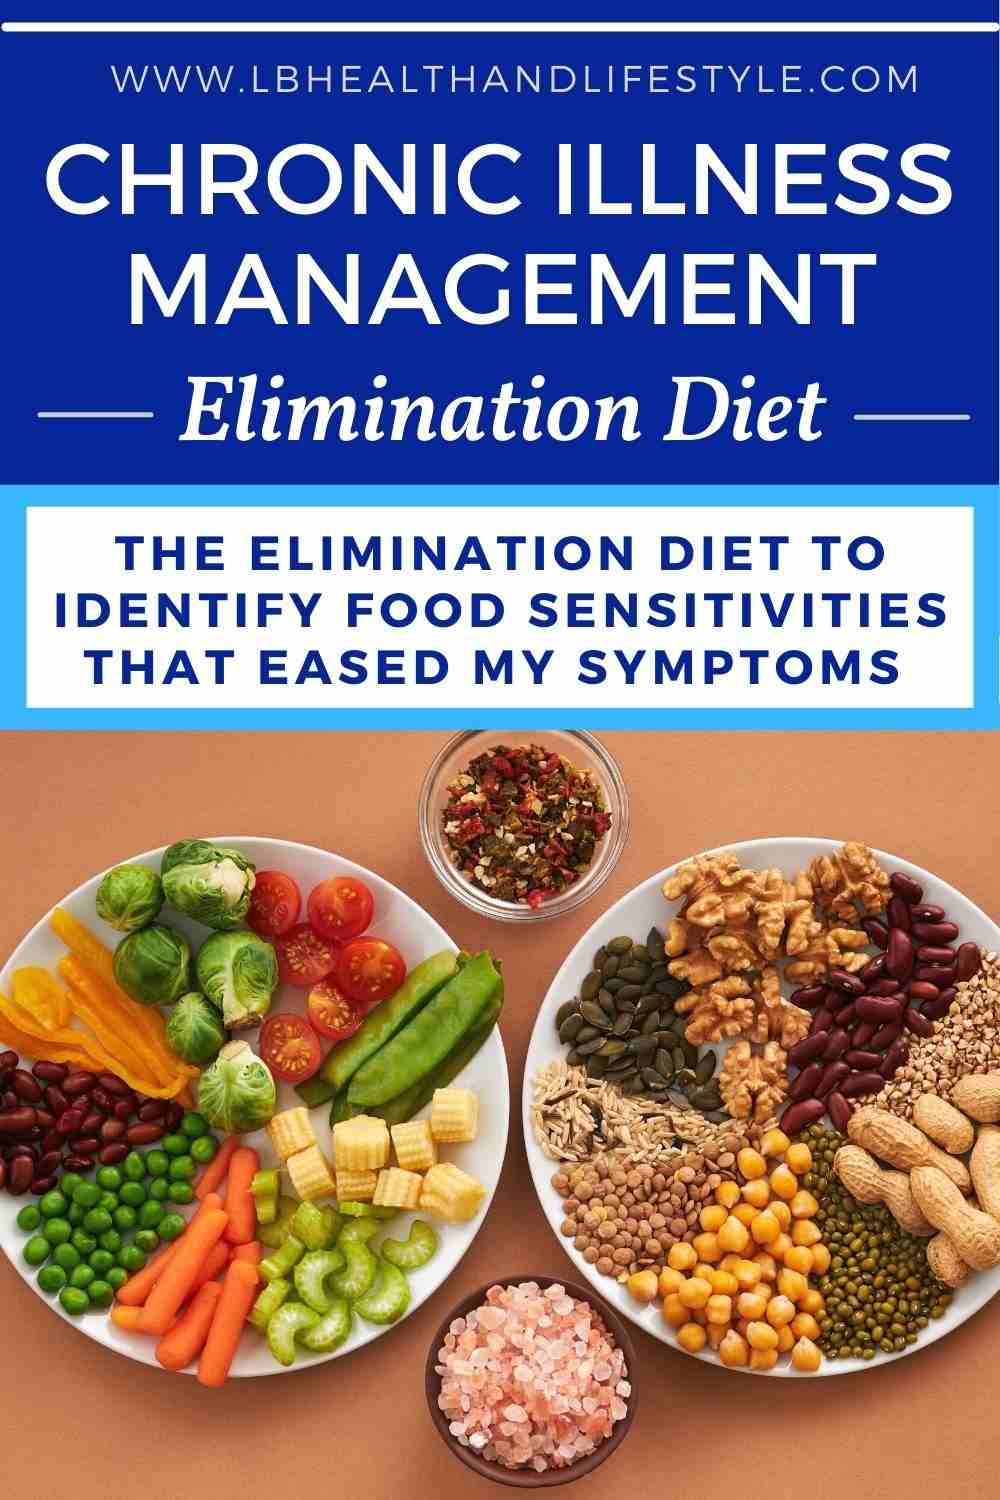 Elimination Diet That Eased My Symptoms